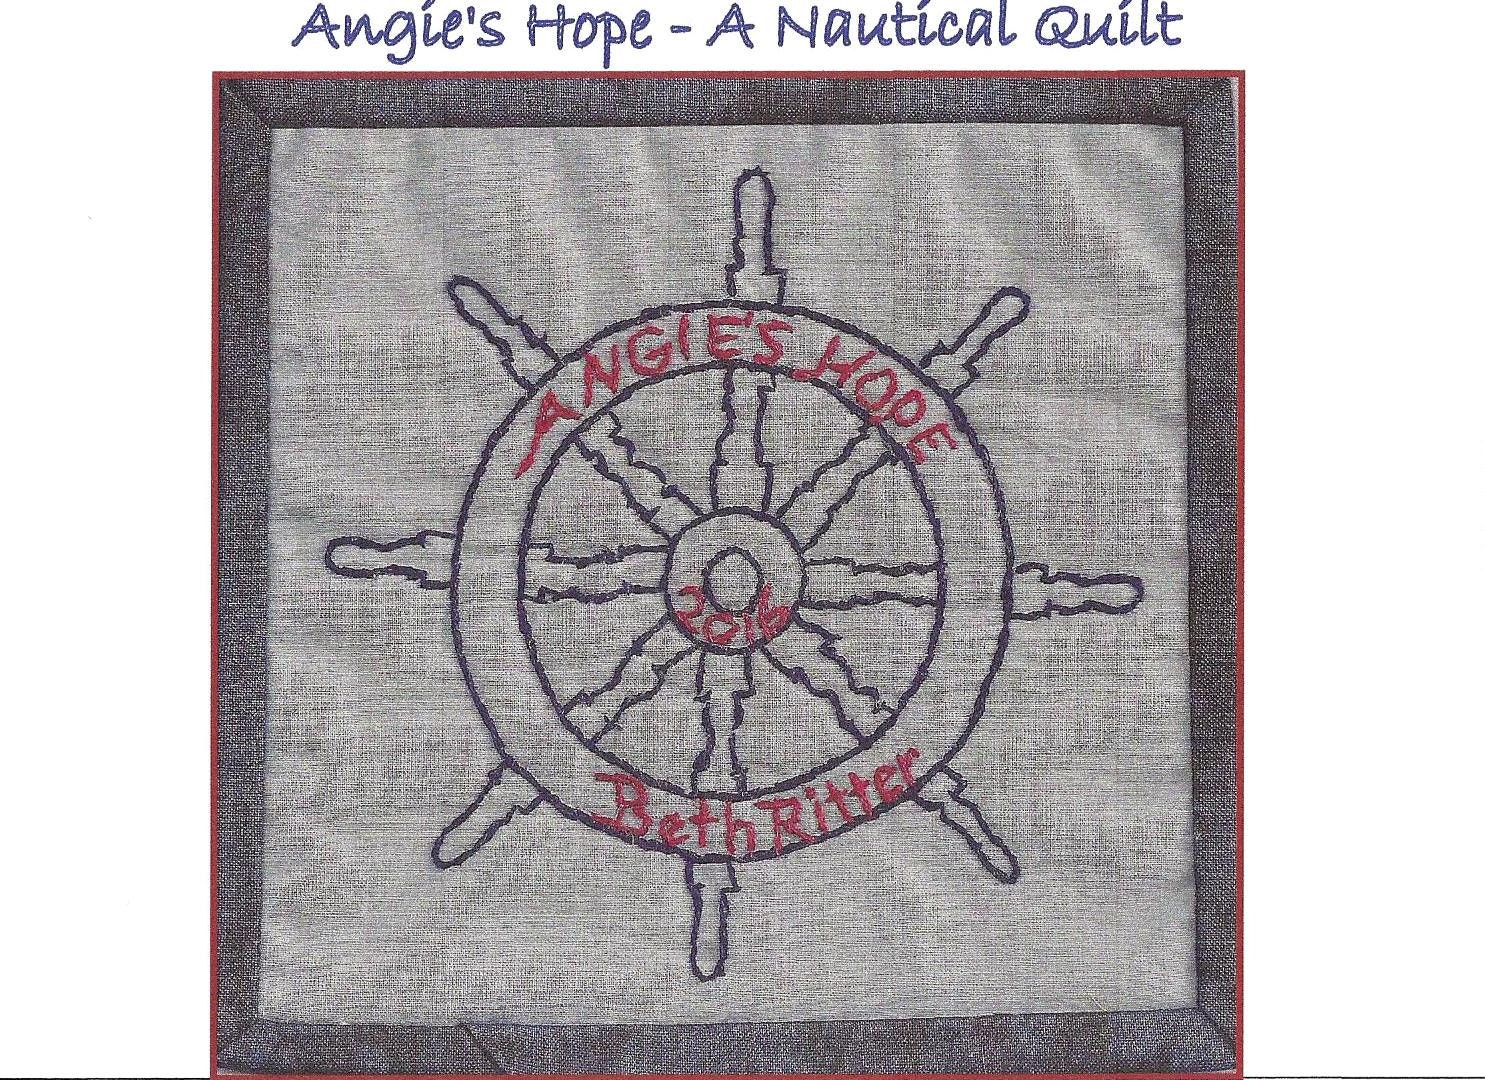 Captain s wheel quilt label hand embroidery pattern